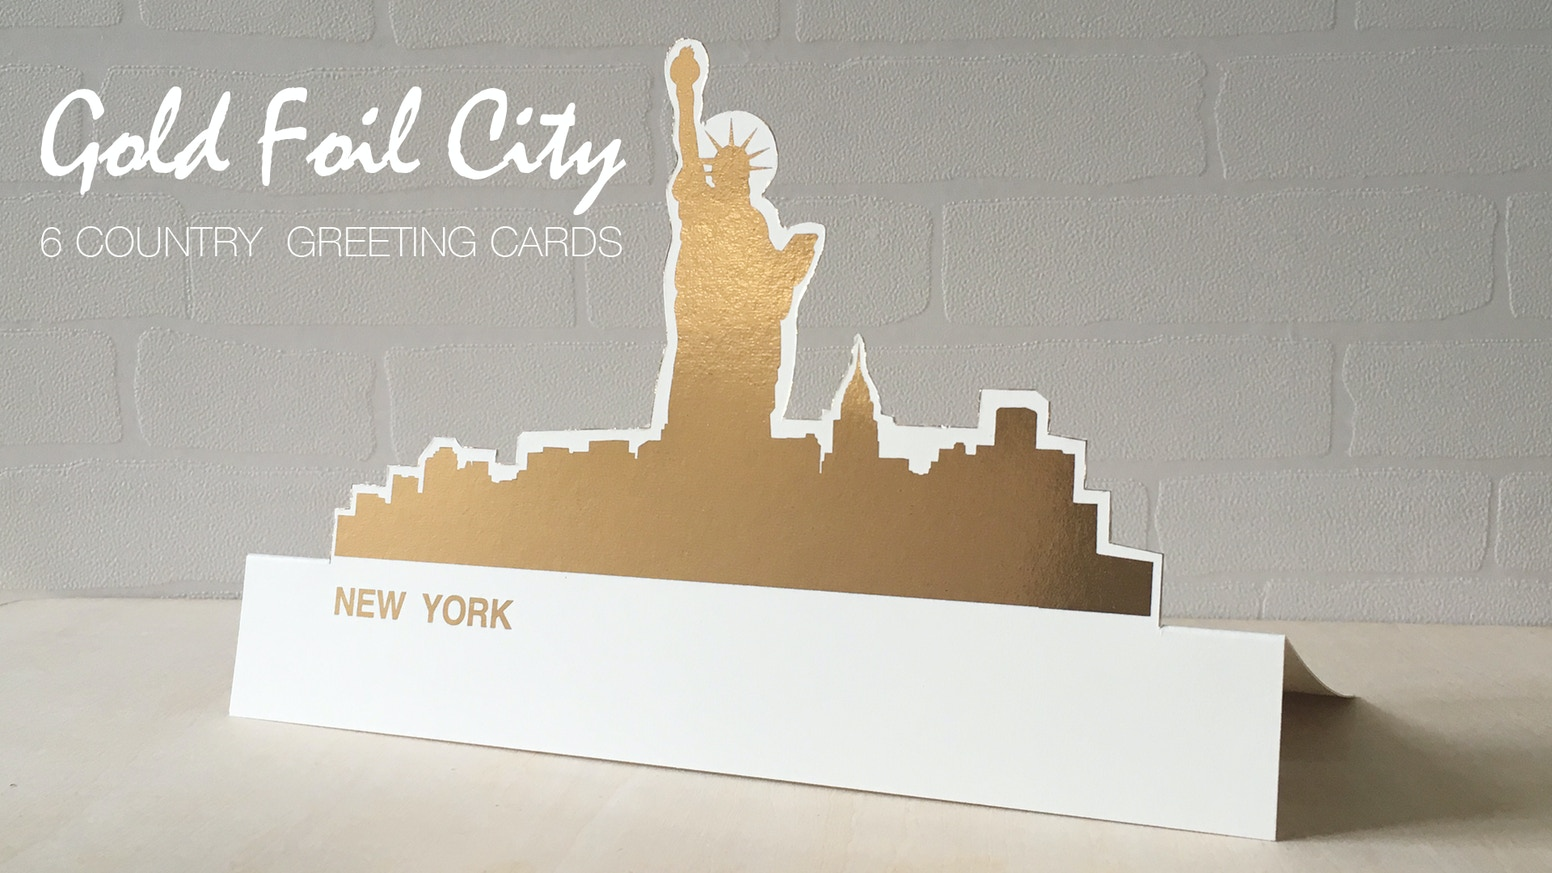 Gold Foil City Greeting Card By Timefourcircle Kickstarter